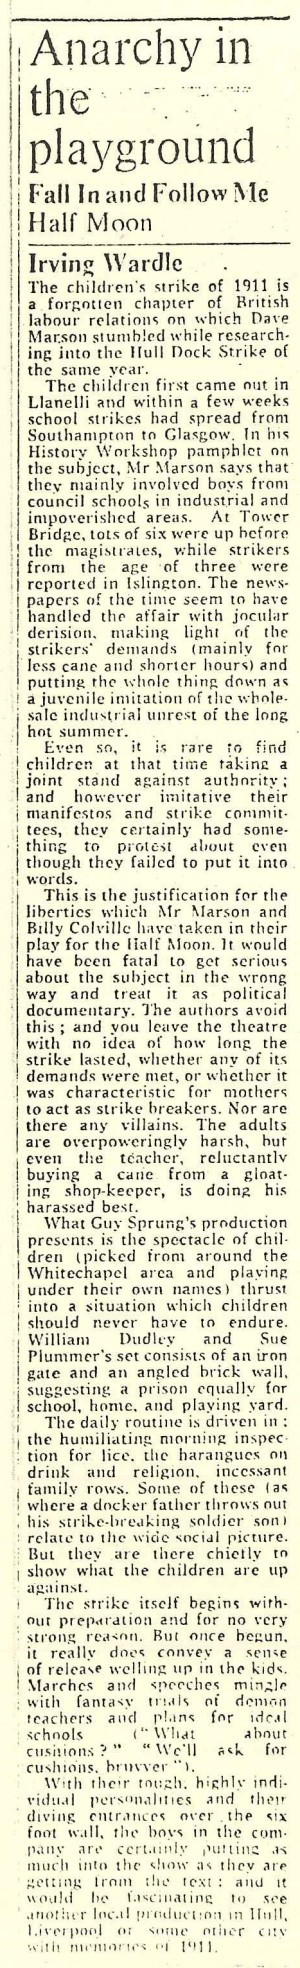 Fall In and Follow Me - The Times review by Irving Wardle June 1973